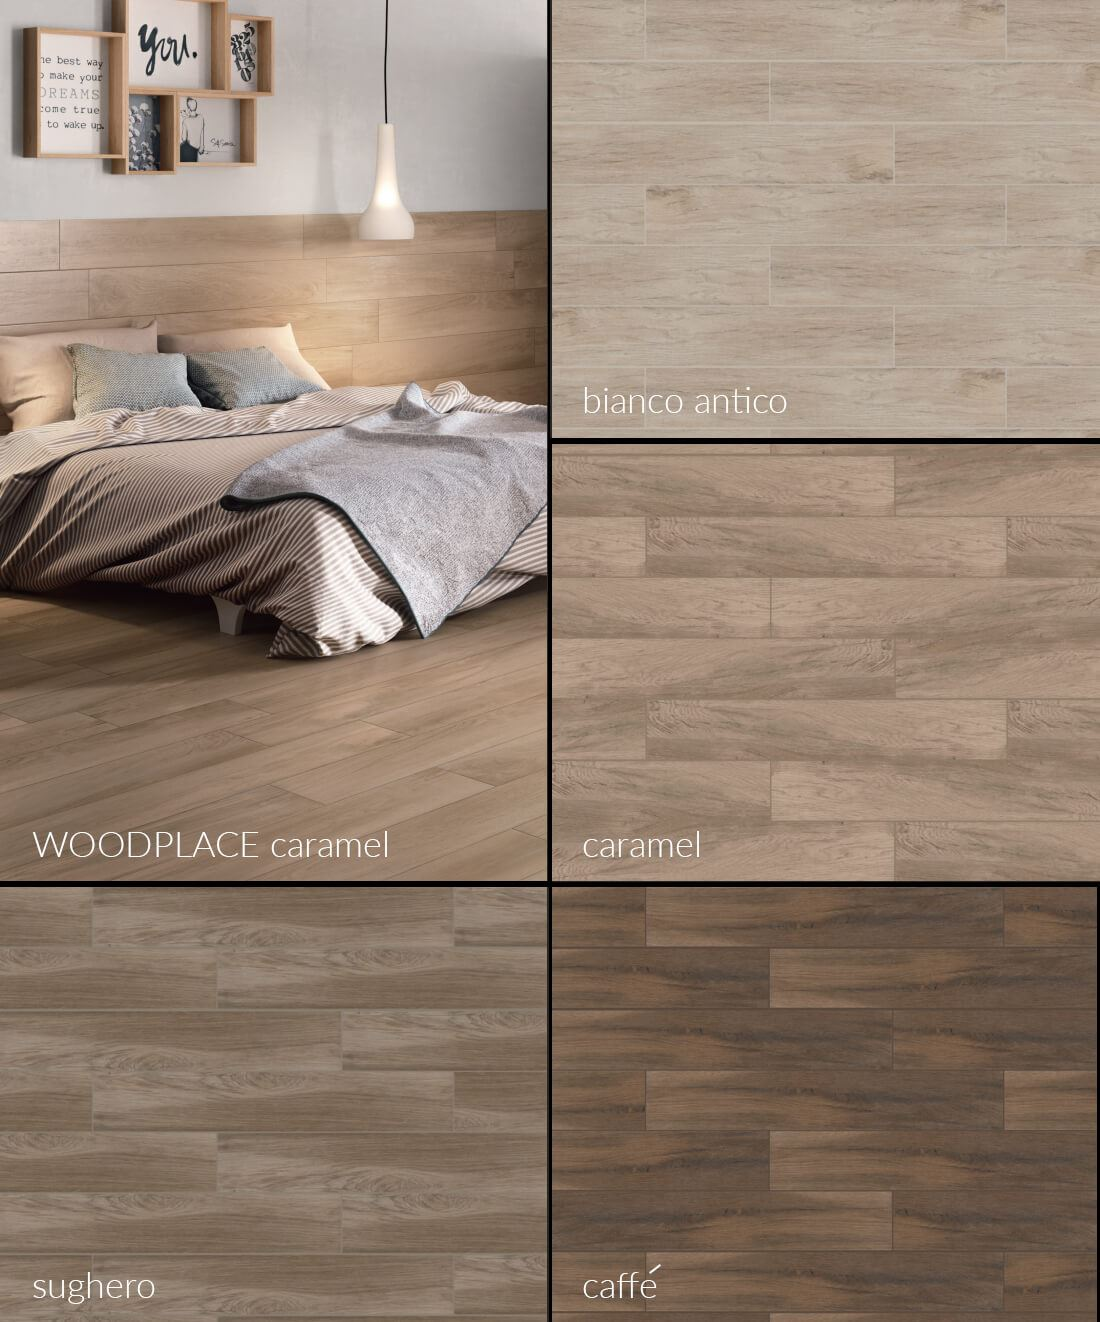 woodplace-wood-look-tiles-room-scene